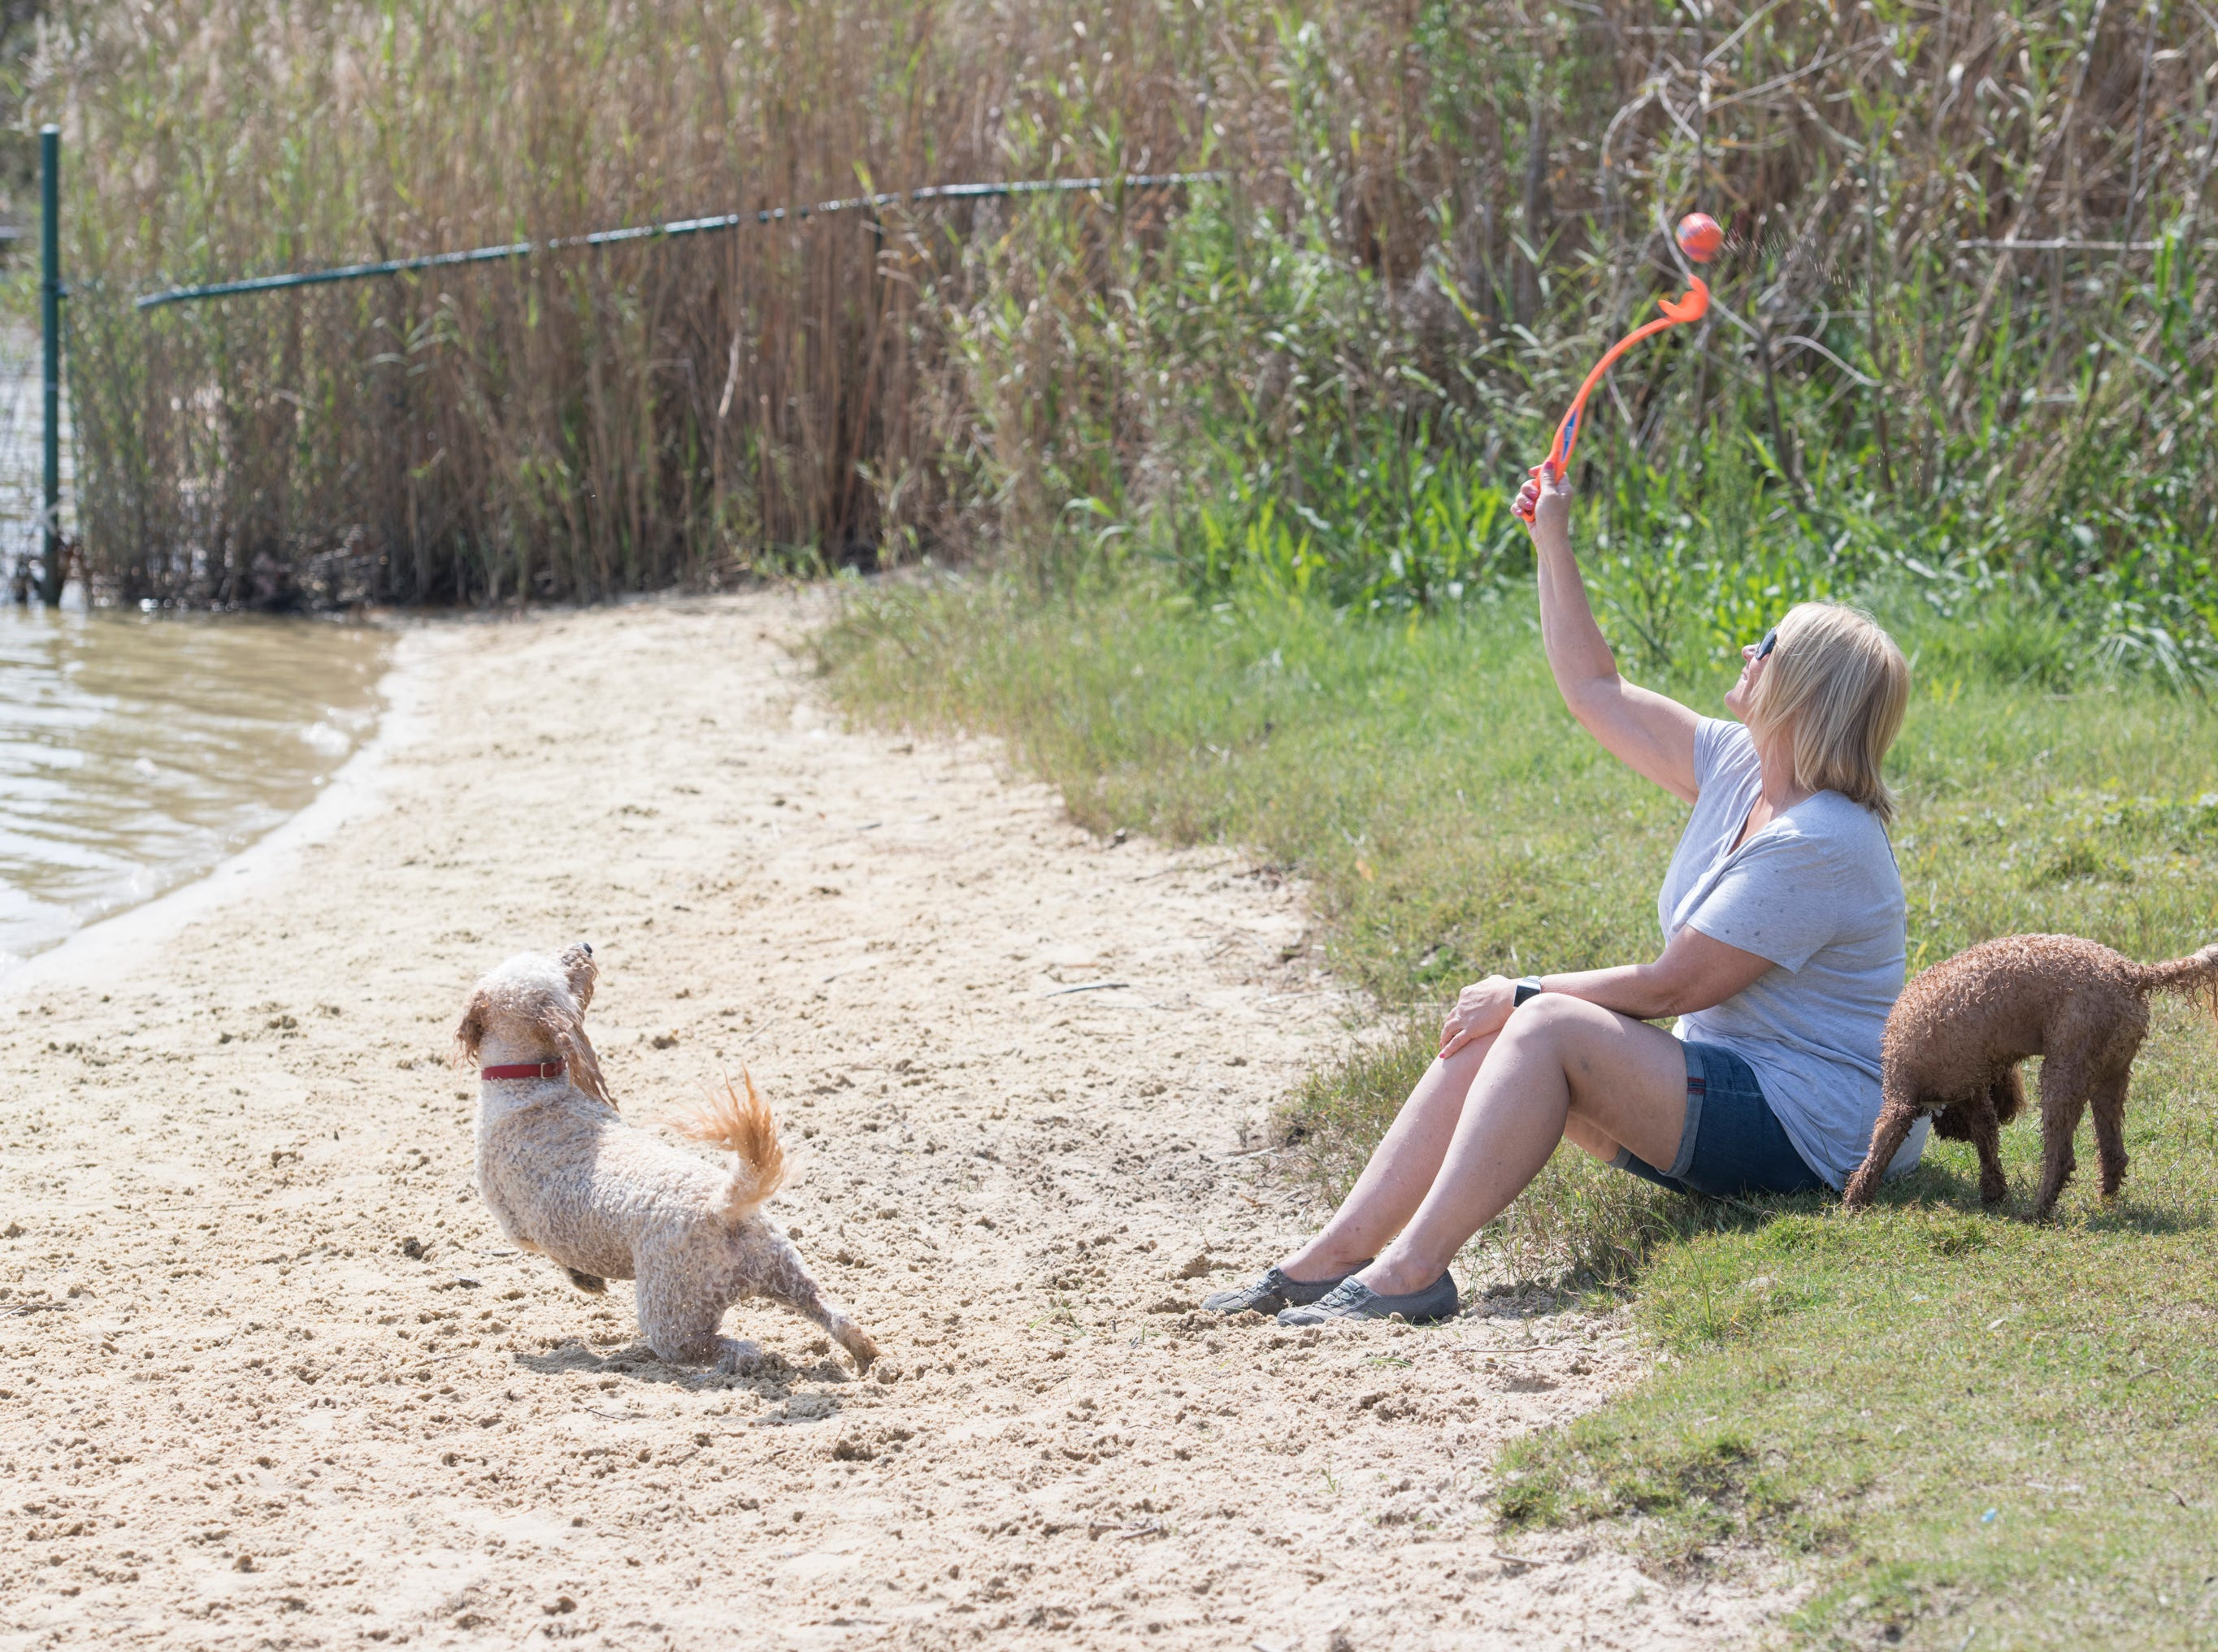 Trudy Adams, of Navarre, tosses a ball for her dogs Teddy, left, and Rory at Bayview Park's dog park in Pensacola on Tuesday, March 12, 2019.  Adams and fellow Navarre residents hope to get a similar dog park for their city.